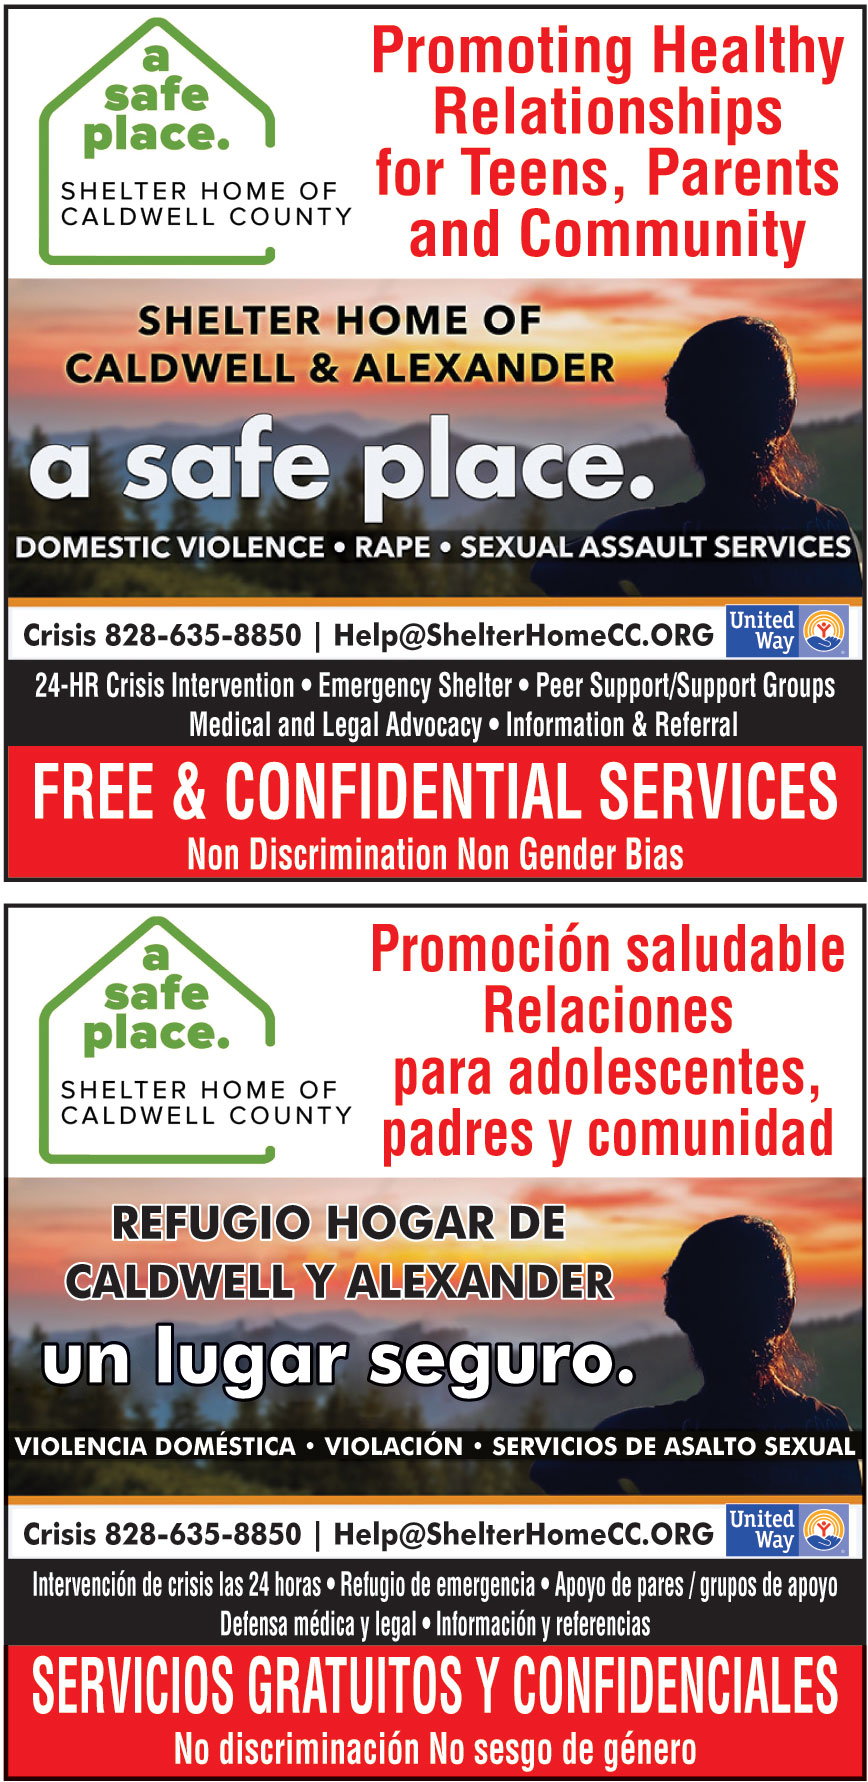 SHELTER HOME OF CALDWELL